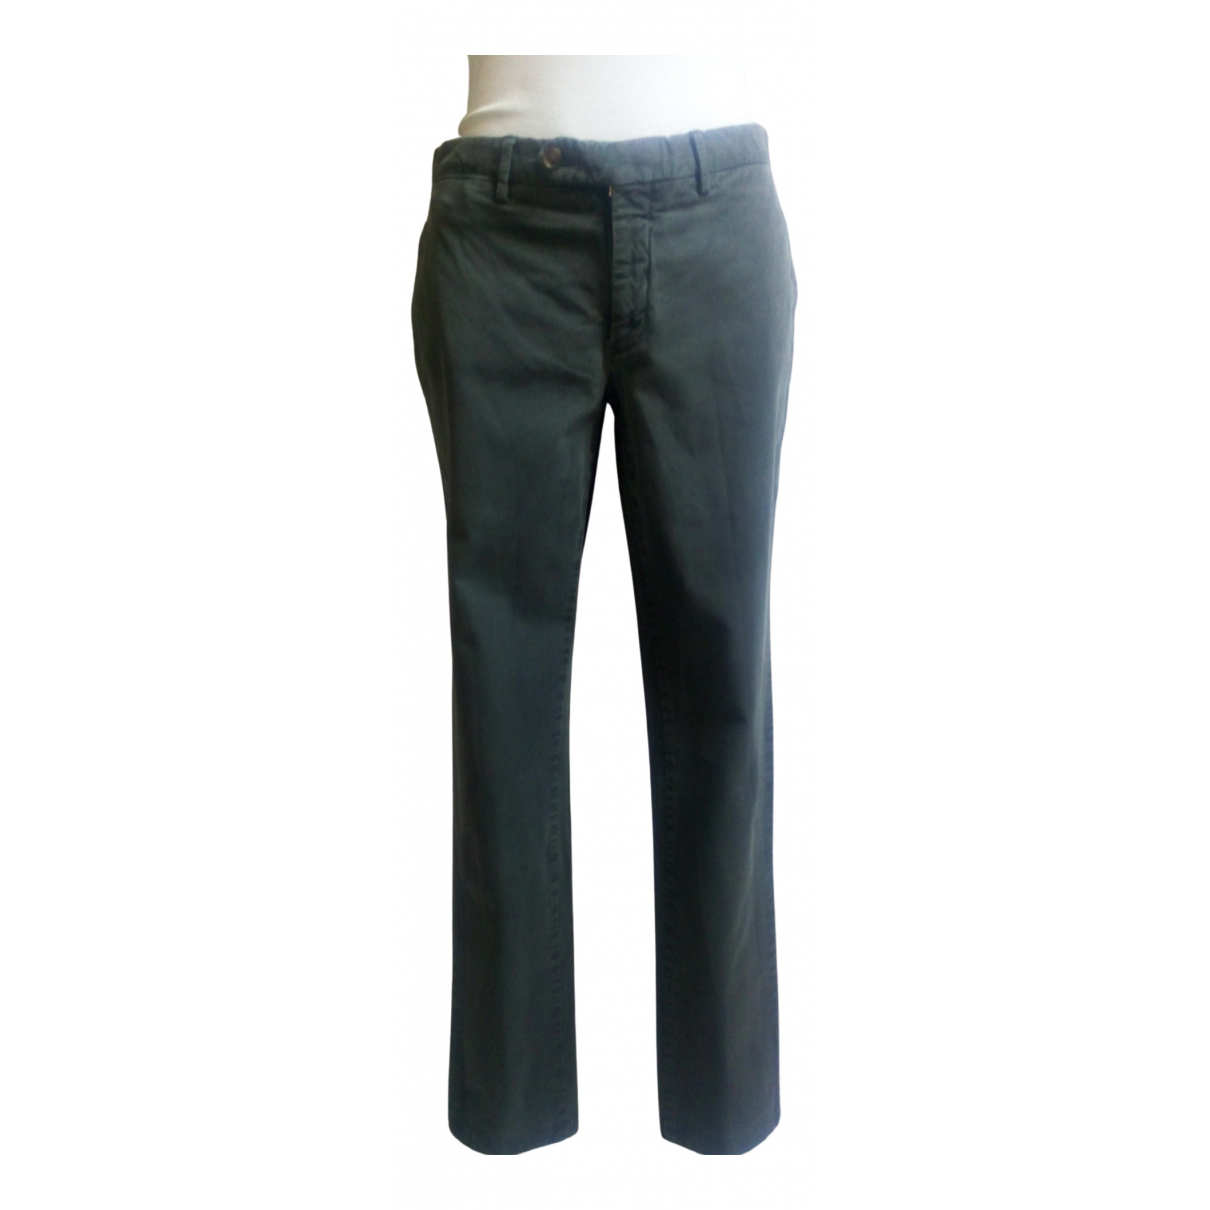 Burberry \N Grey Cotton Trousers for Women M International